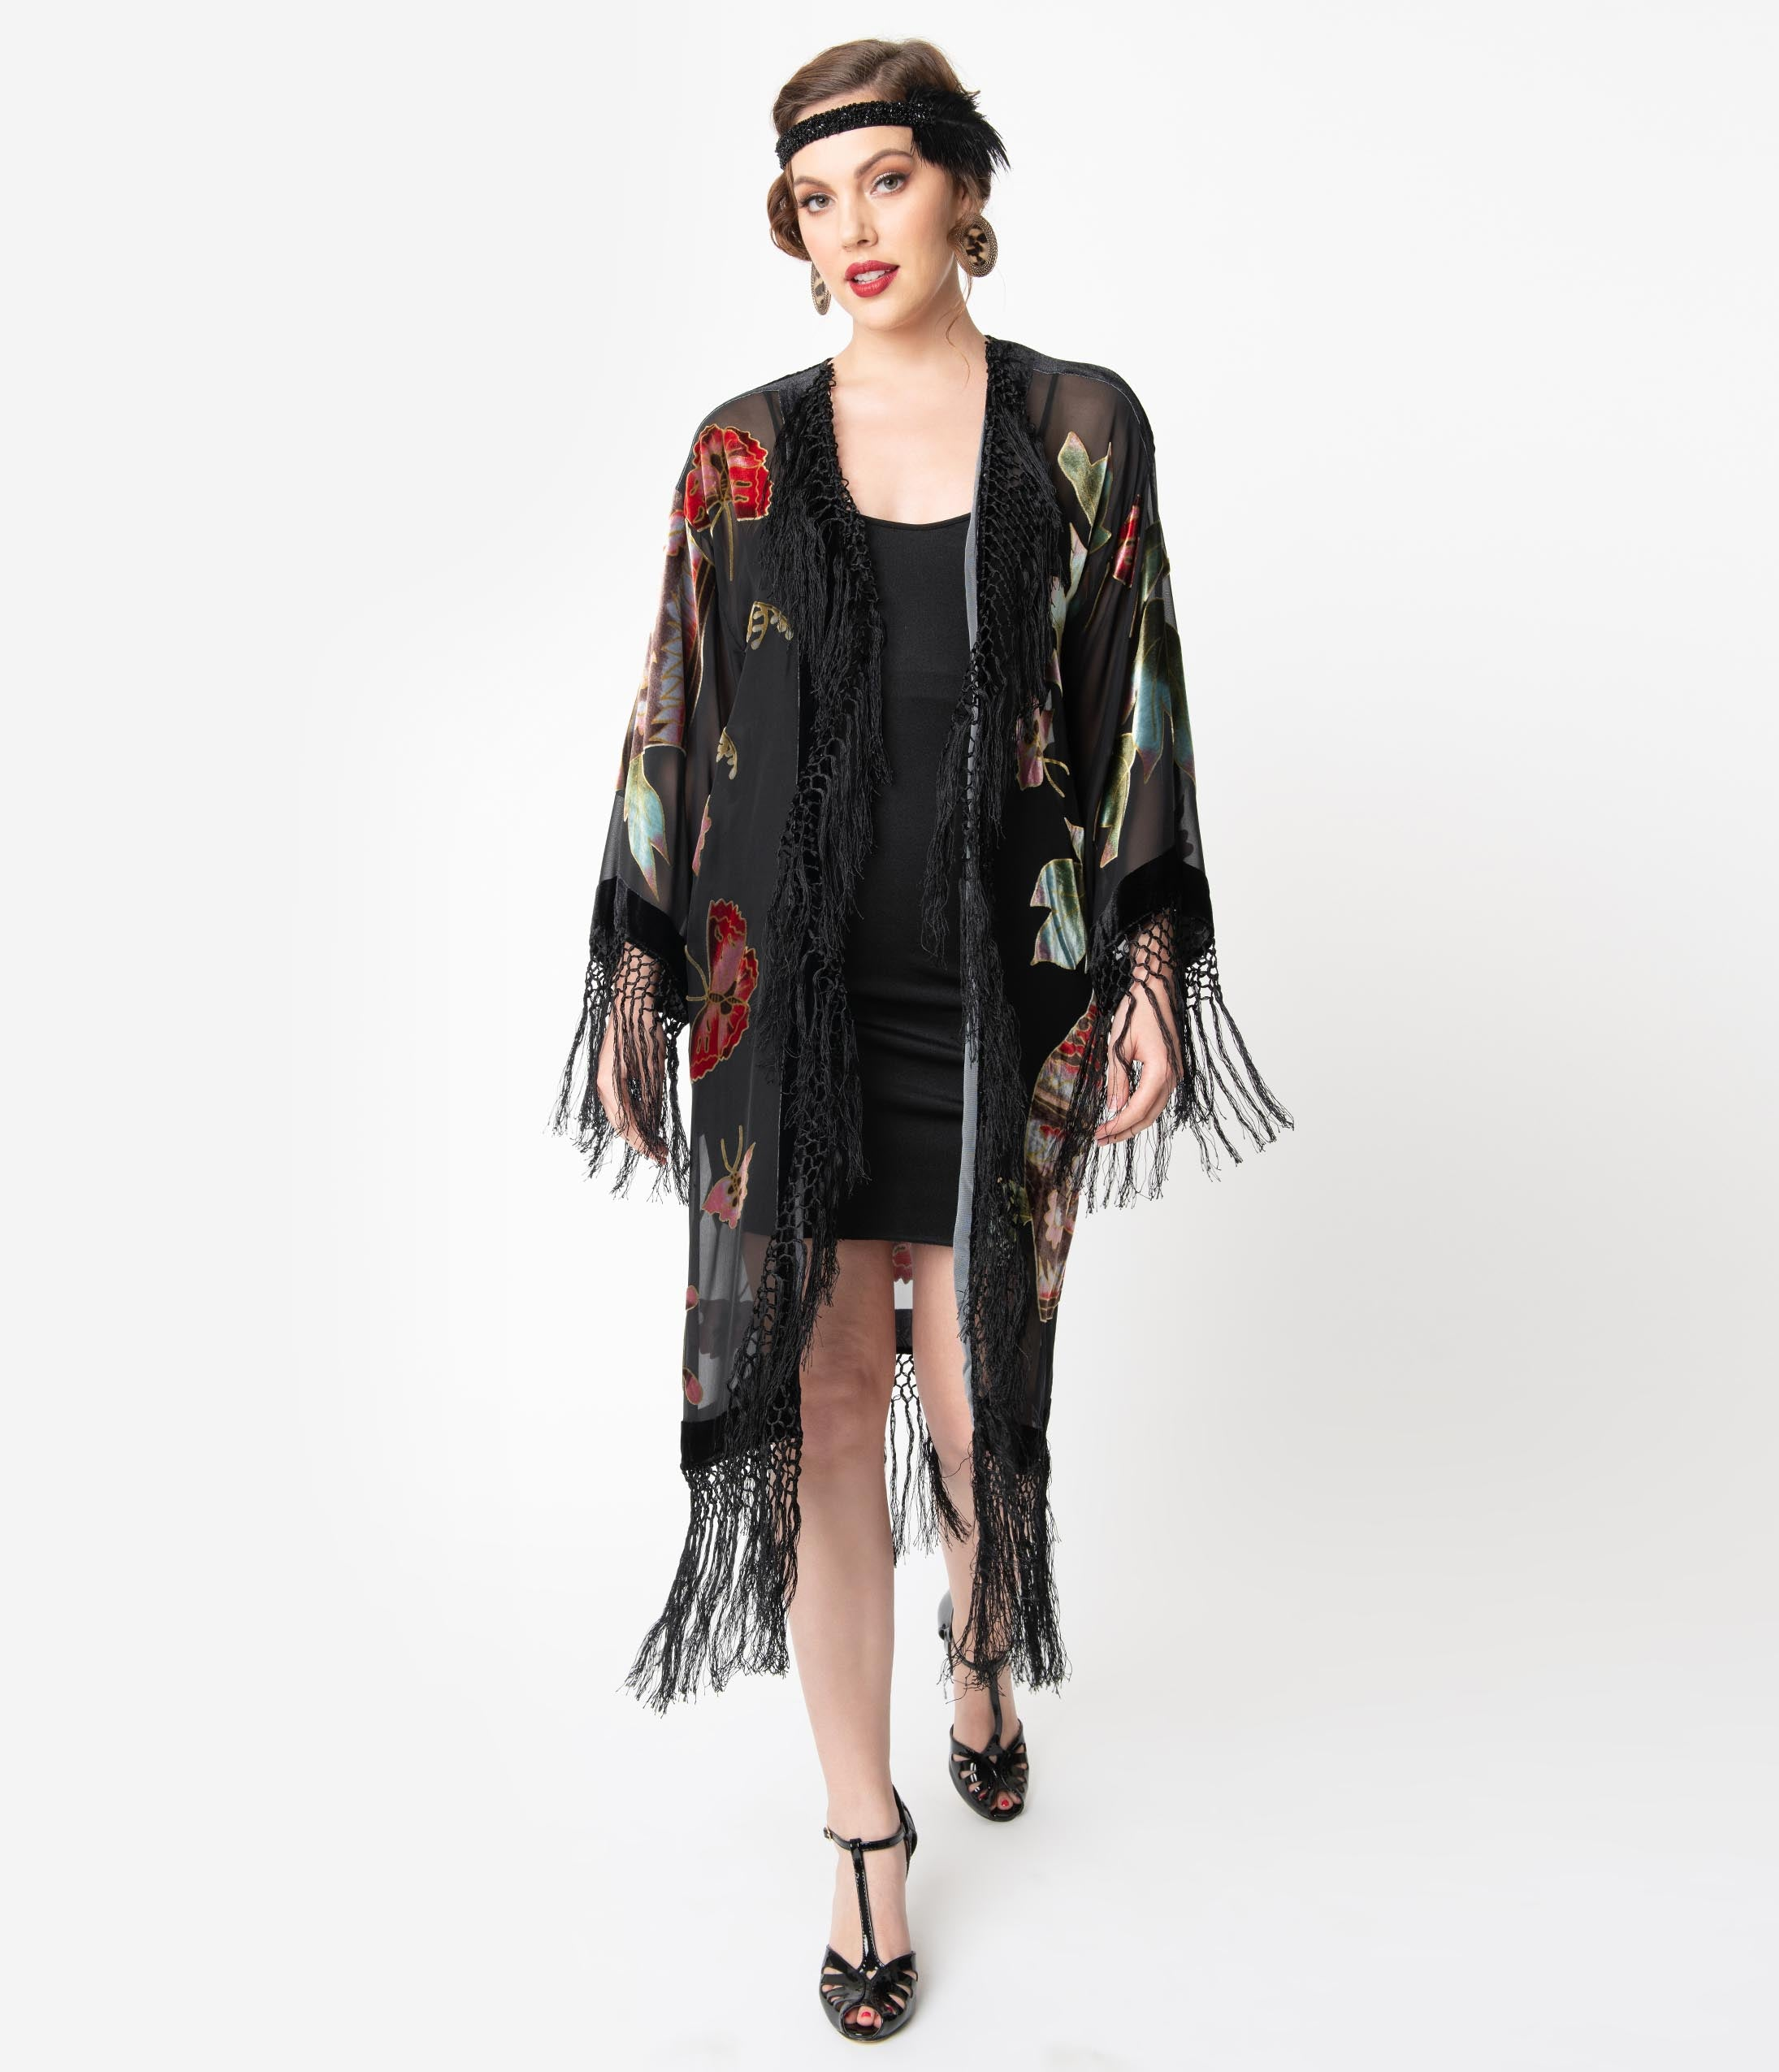 Vintage Coats & Jackets | Retro Coats and Jackets Vintage Style Black Floral Devore Velvet Fringe Flapper Coat $202.00 AT vintagedancer.com